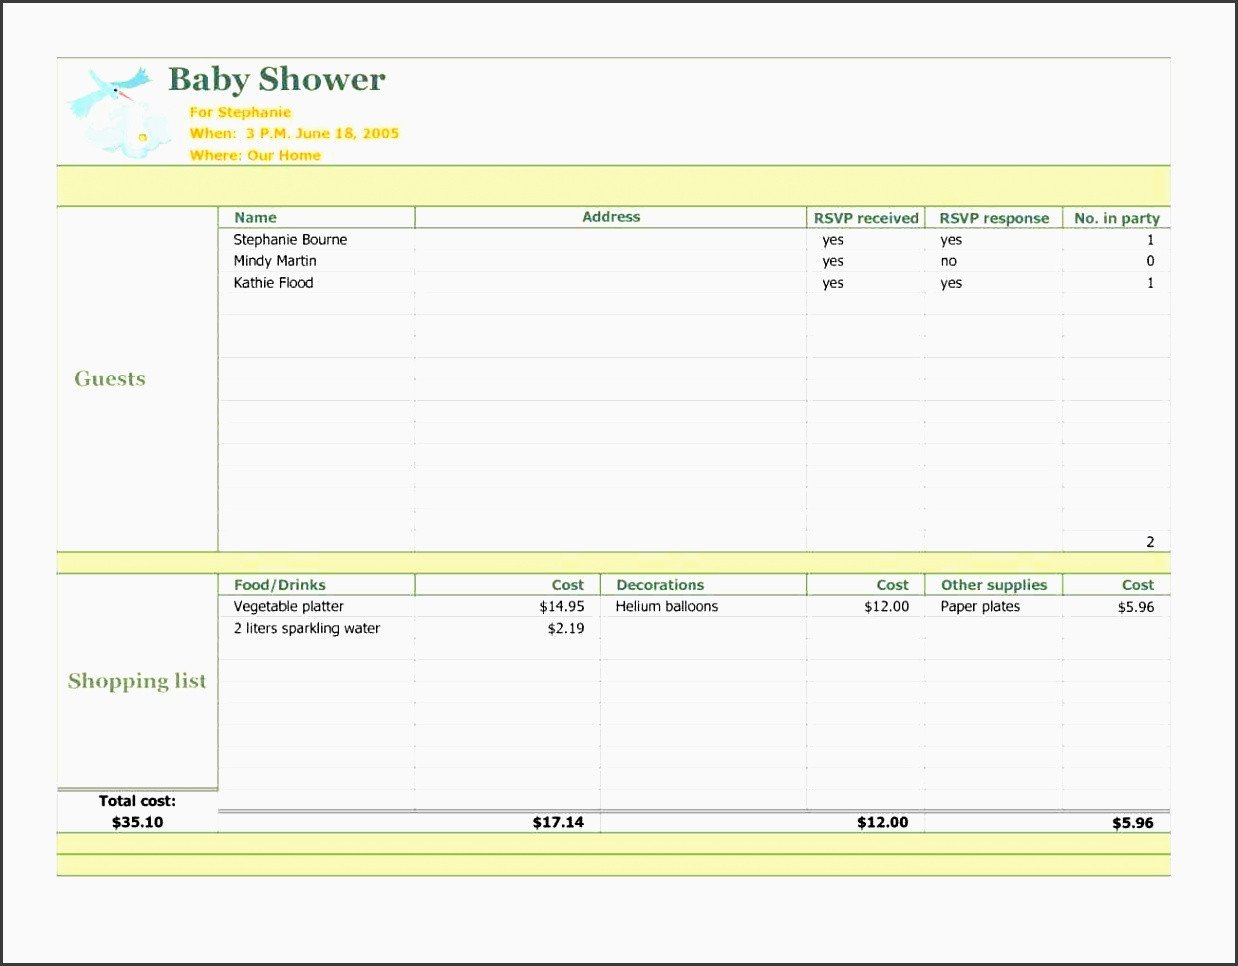 Baby Shower Planning Template 6 Baby Shower Planner Printable Sampletemplatess